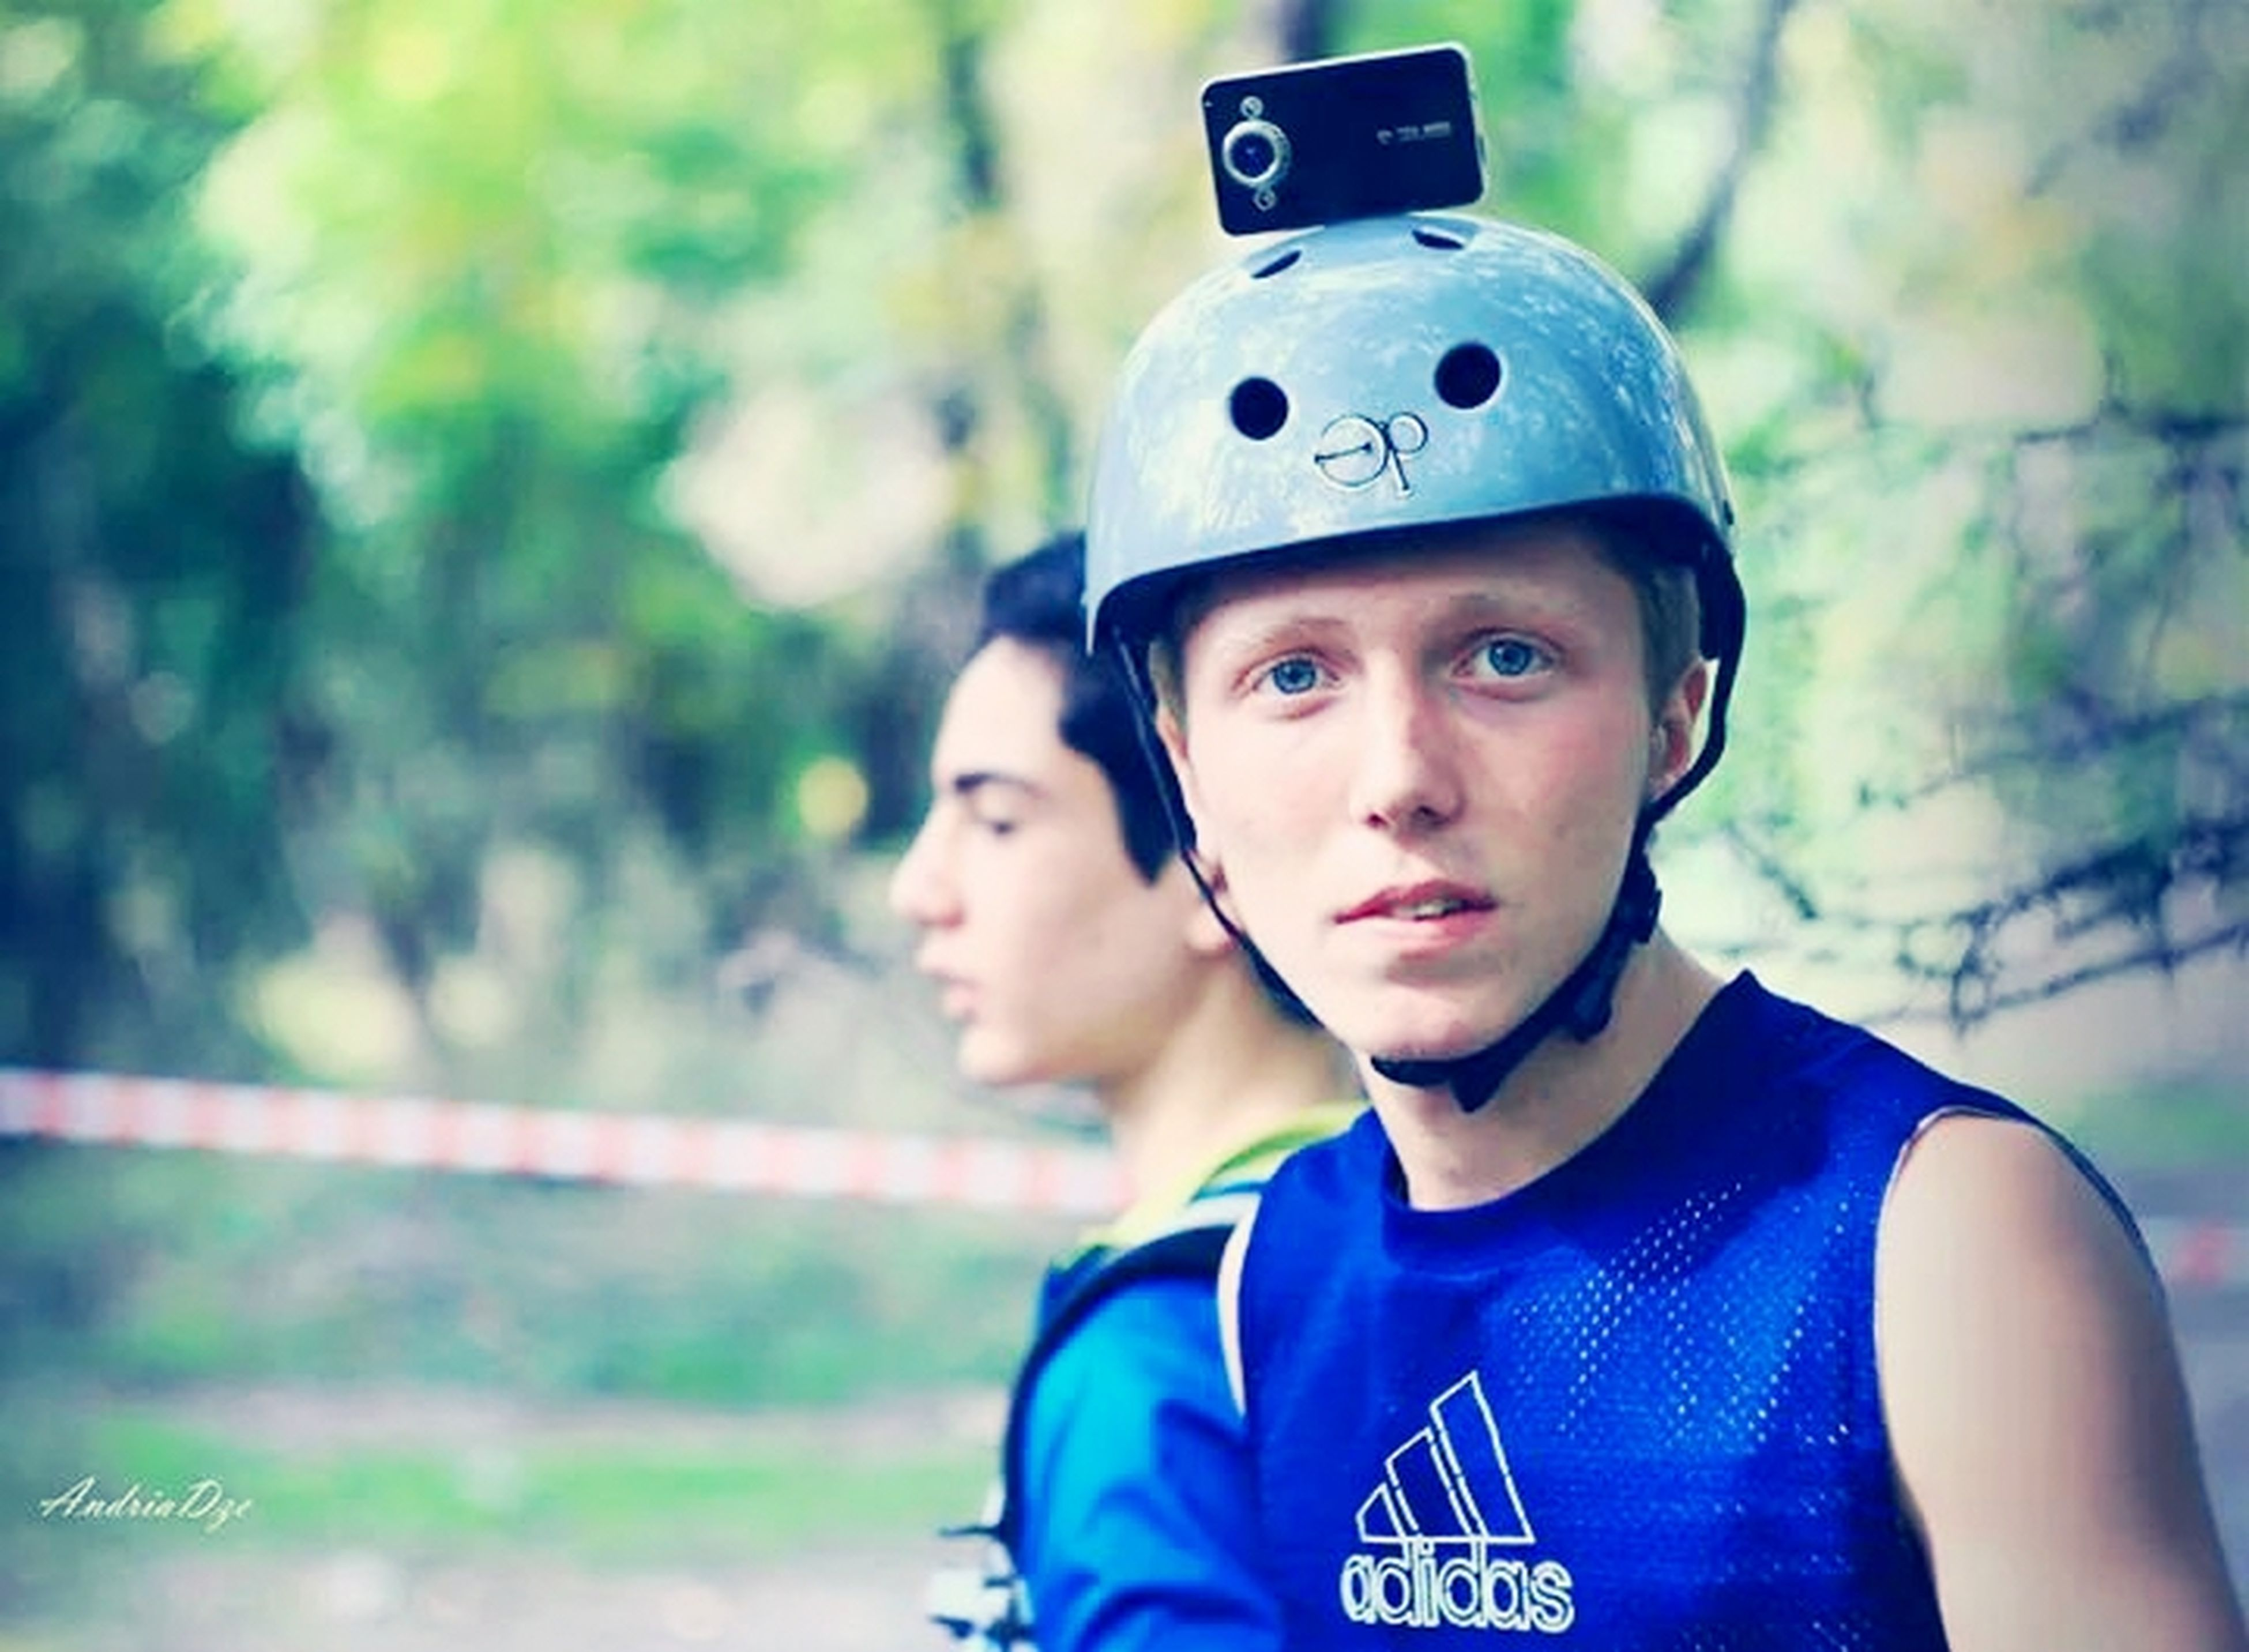 focus on foreground, portrait, person, looking at camera, lifestyles, headshot, front view, leisure activity, boys, childhood, smiling, happiness, casual clothing, cap, close-up, elementary age, young men, waist up